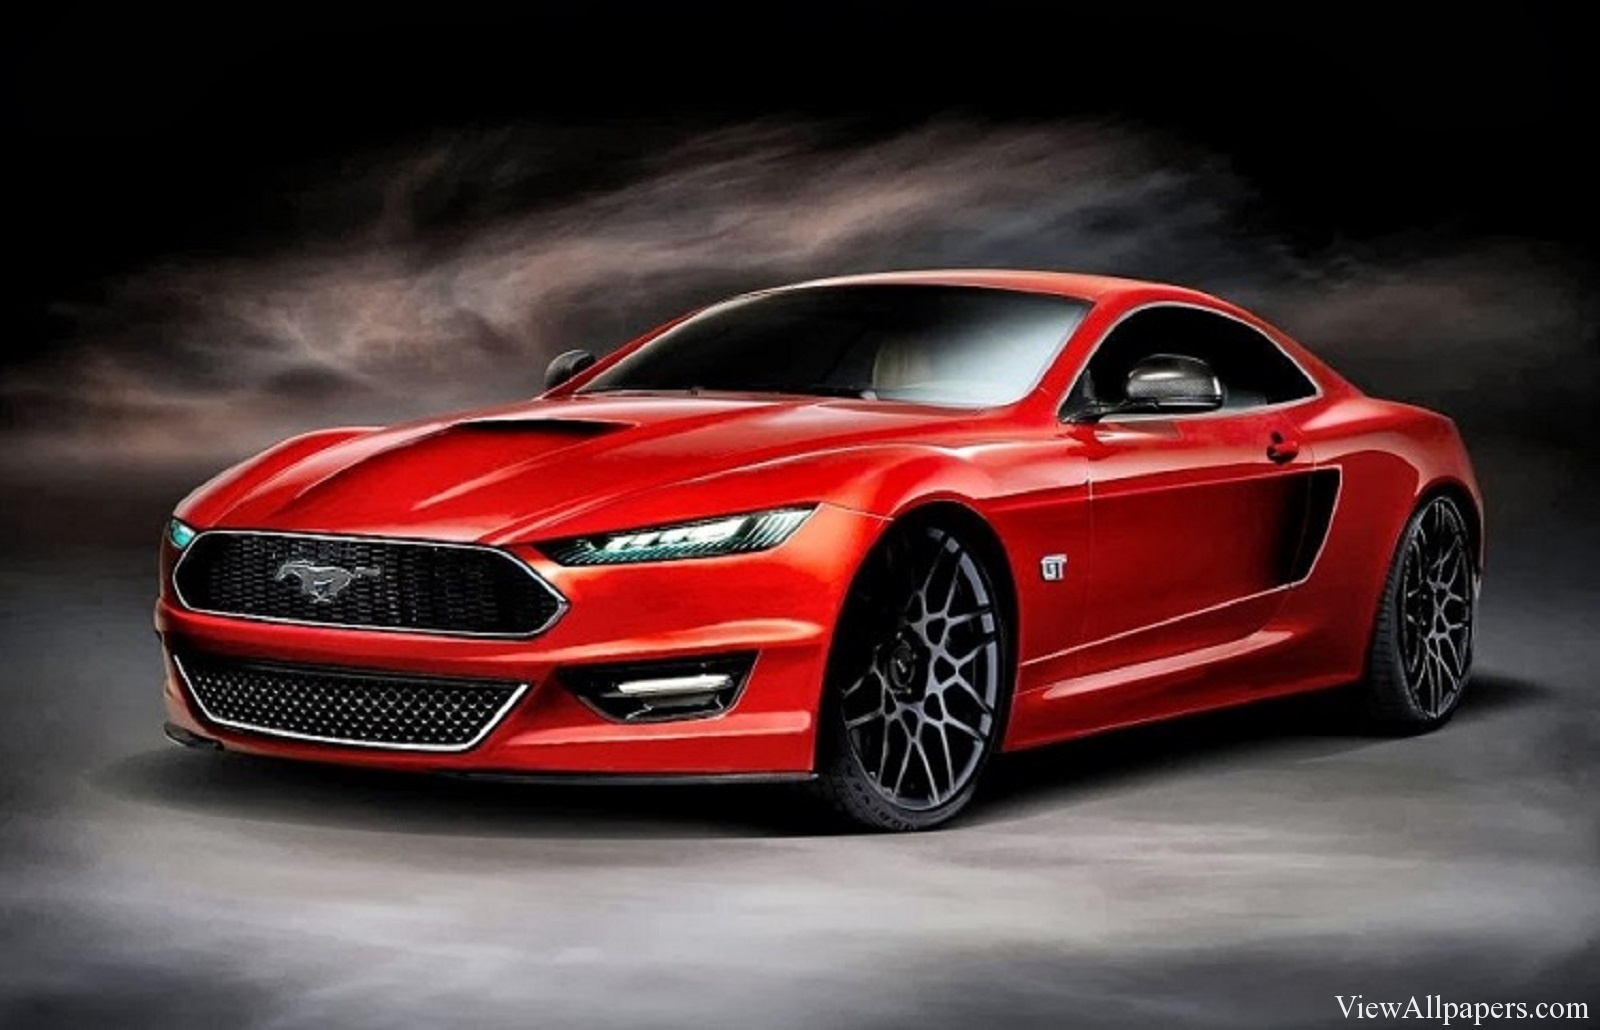 2017 ford mustang Release Date Price and Specs 1600x1030